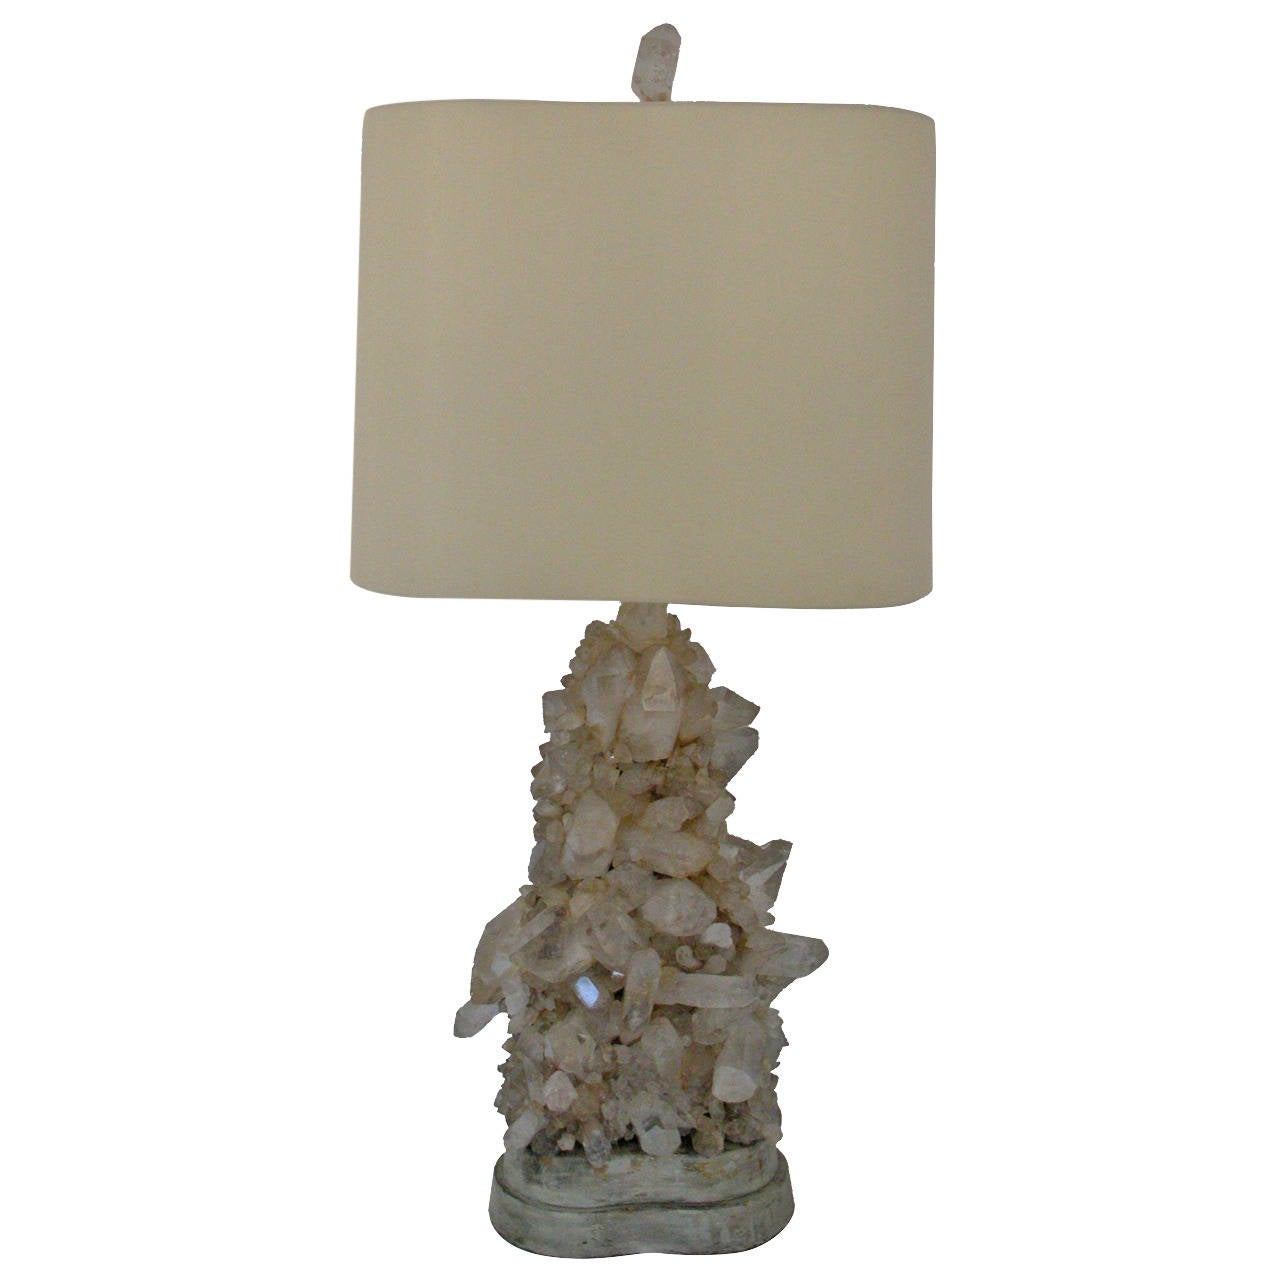 Carole stupell rock crystal lamp 1950 at 1stdibs for Rock lamp